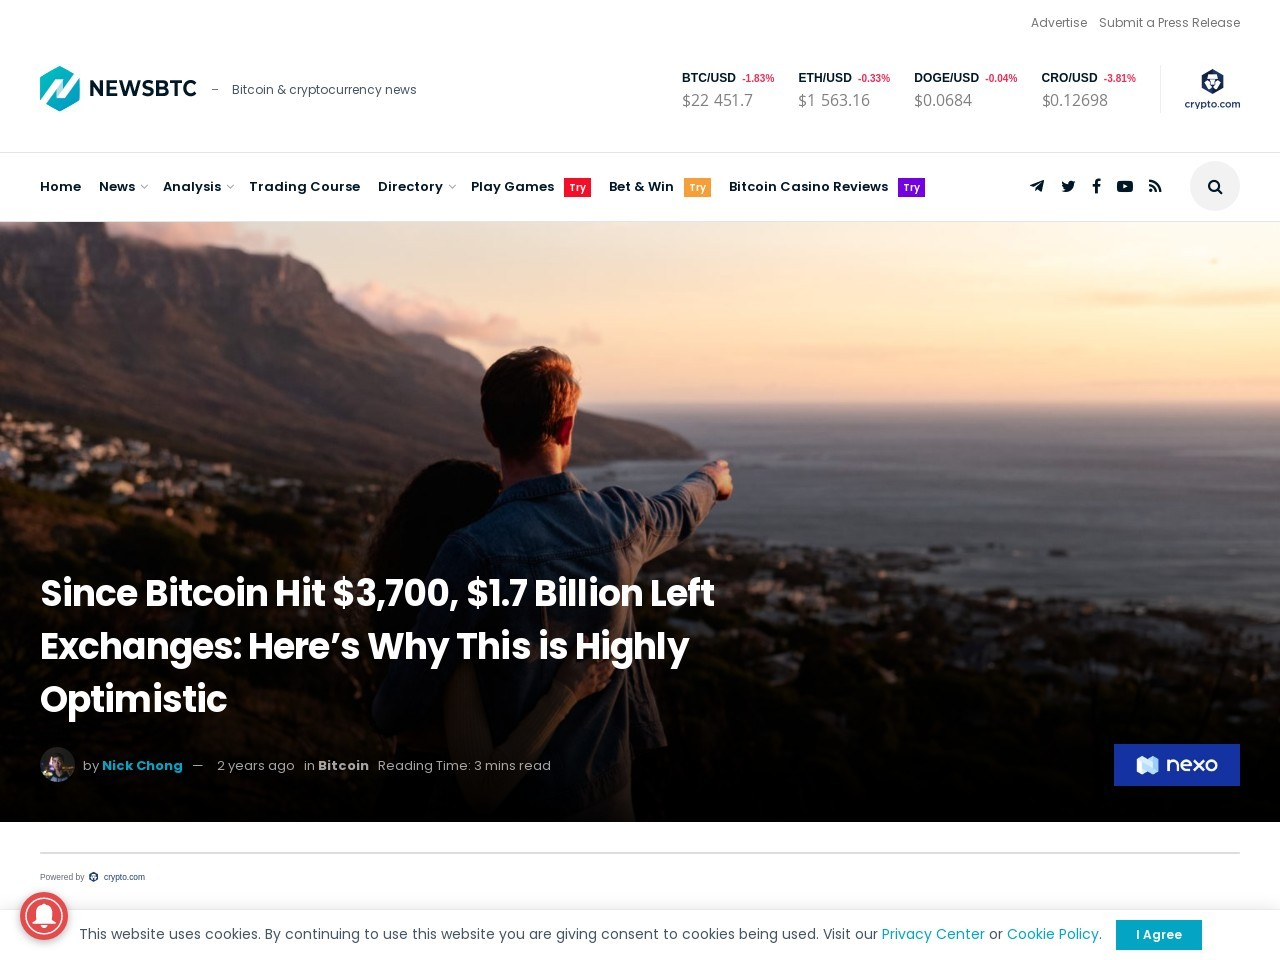 Since Bitcoin Hit $3,700, $1.7 Billion Left Exchanges: Here's Why This is Highly Optimistic